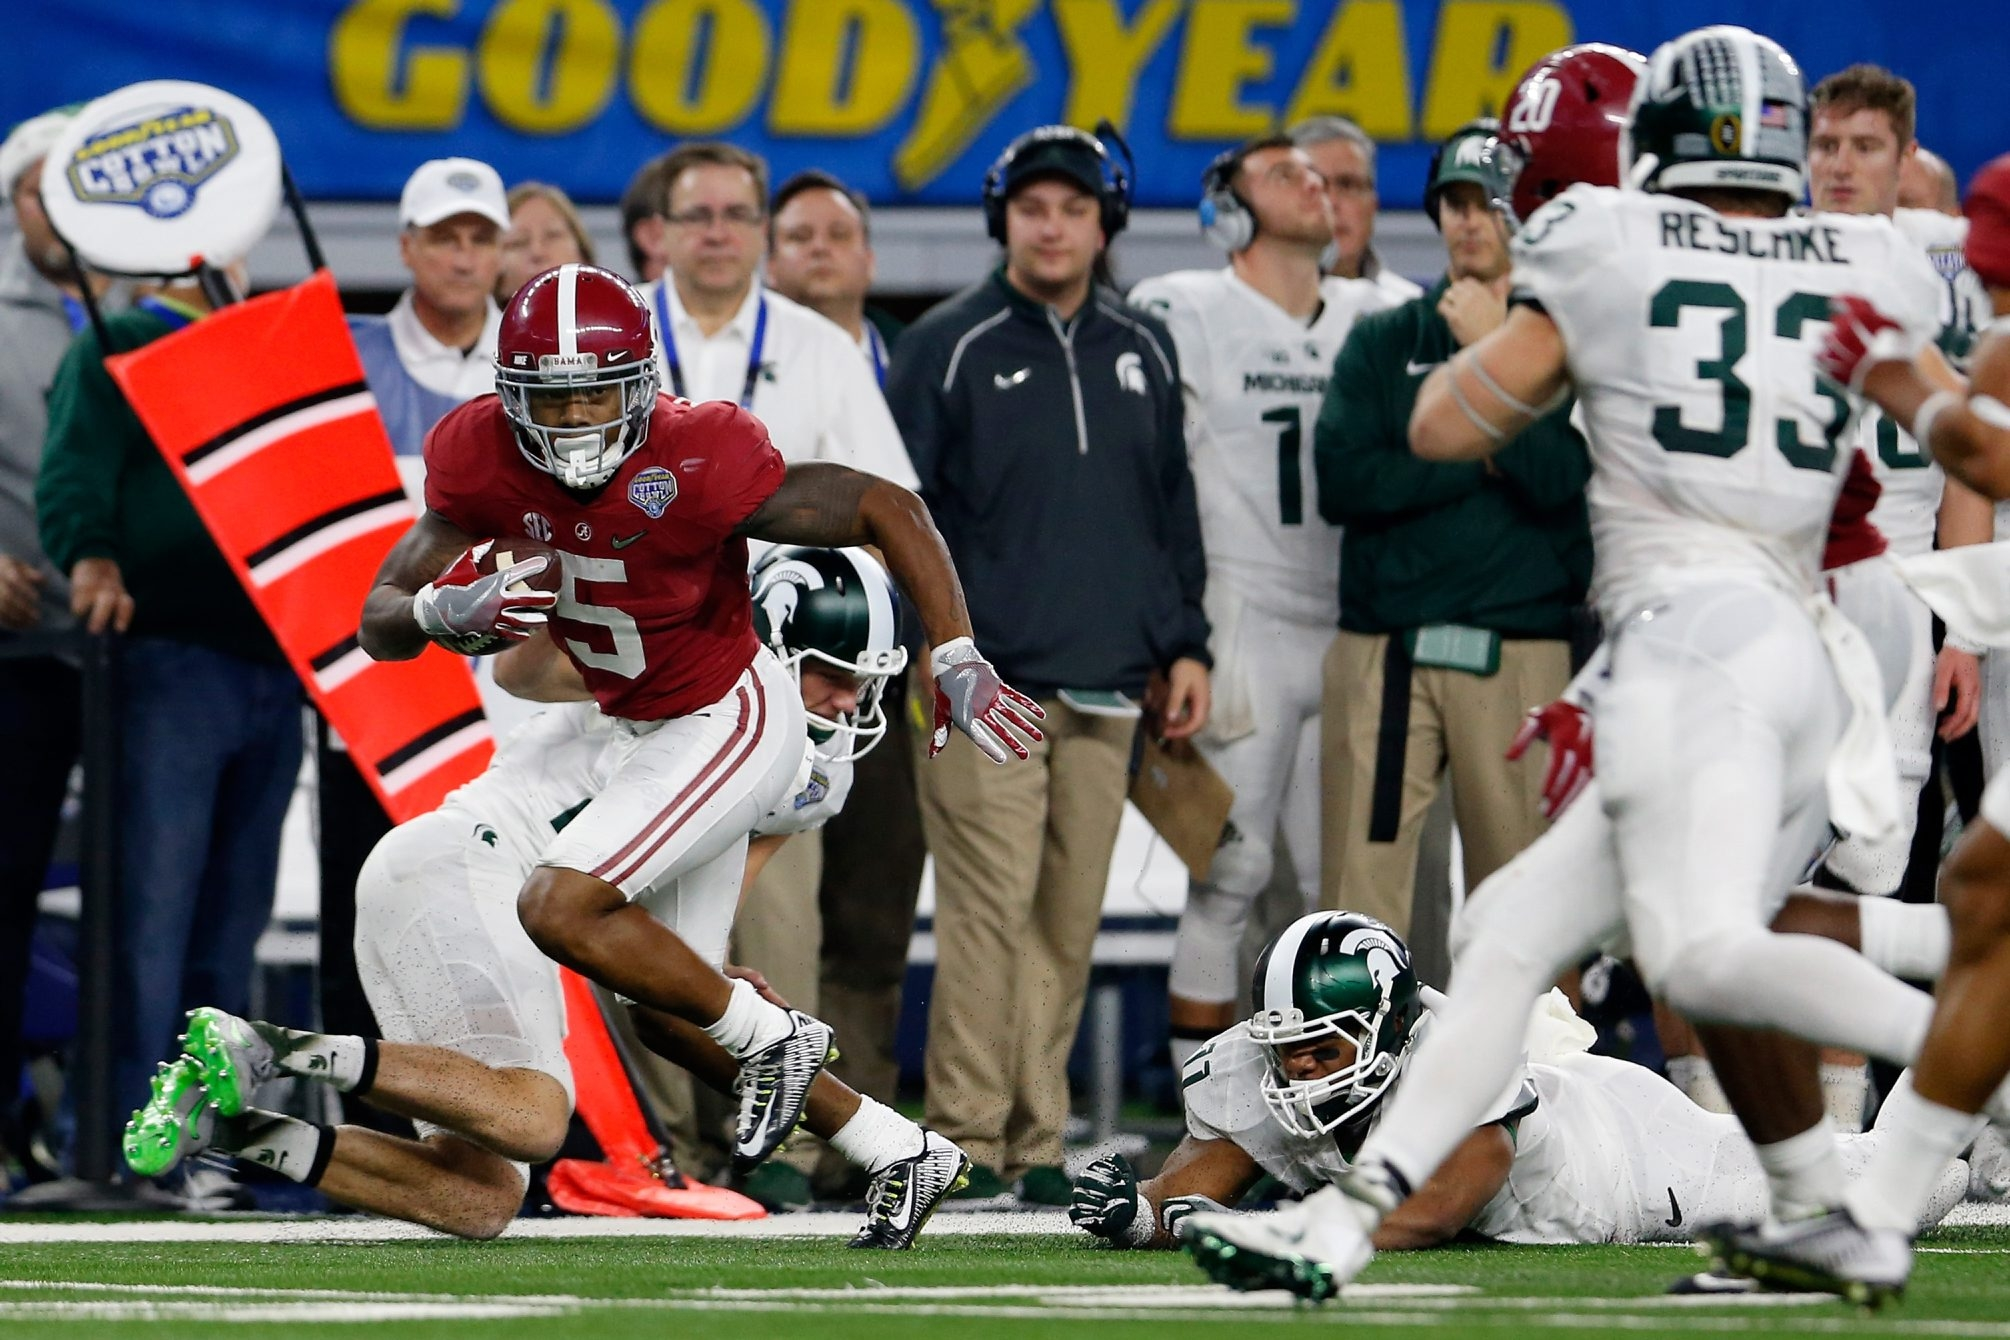 Cyrus Jones' ability to return punts adds to his versatility as an NFL prospect at the cornerback position.